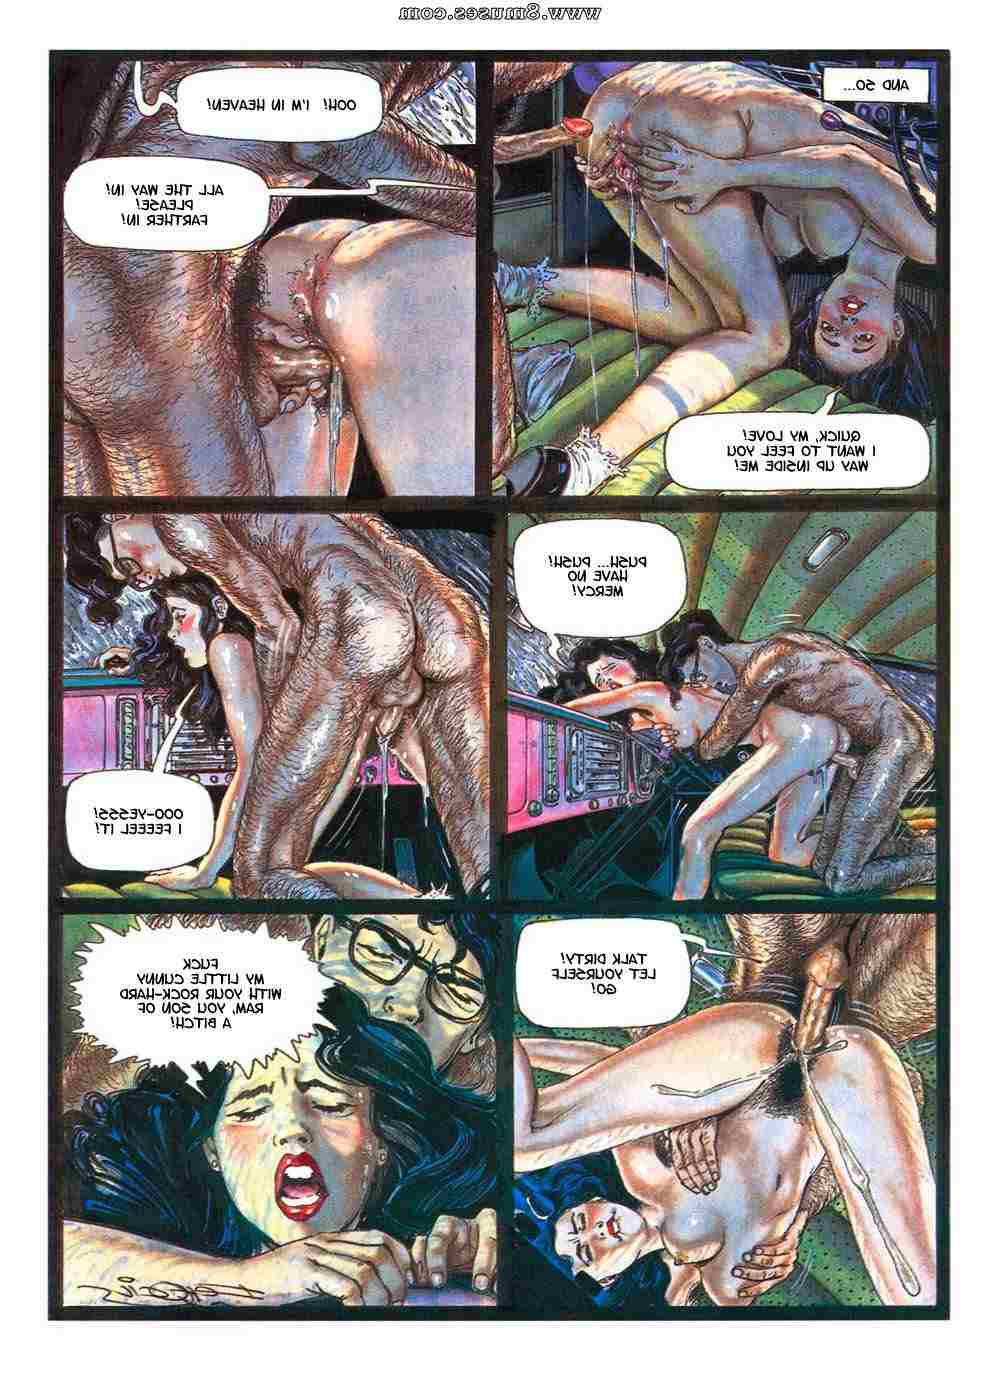 Ferocius-Comics/Forbidden-Flower Forbidden_Flower__8muses_-_Sex_and_Porn_Comics_27.jpg